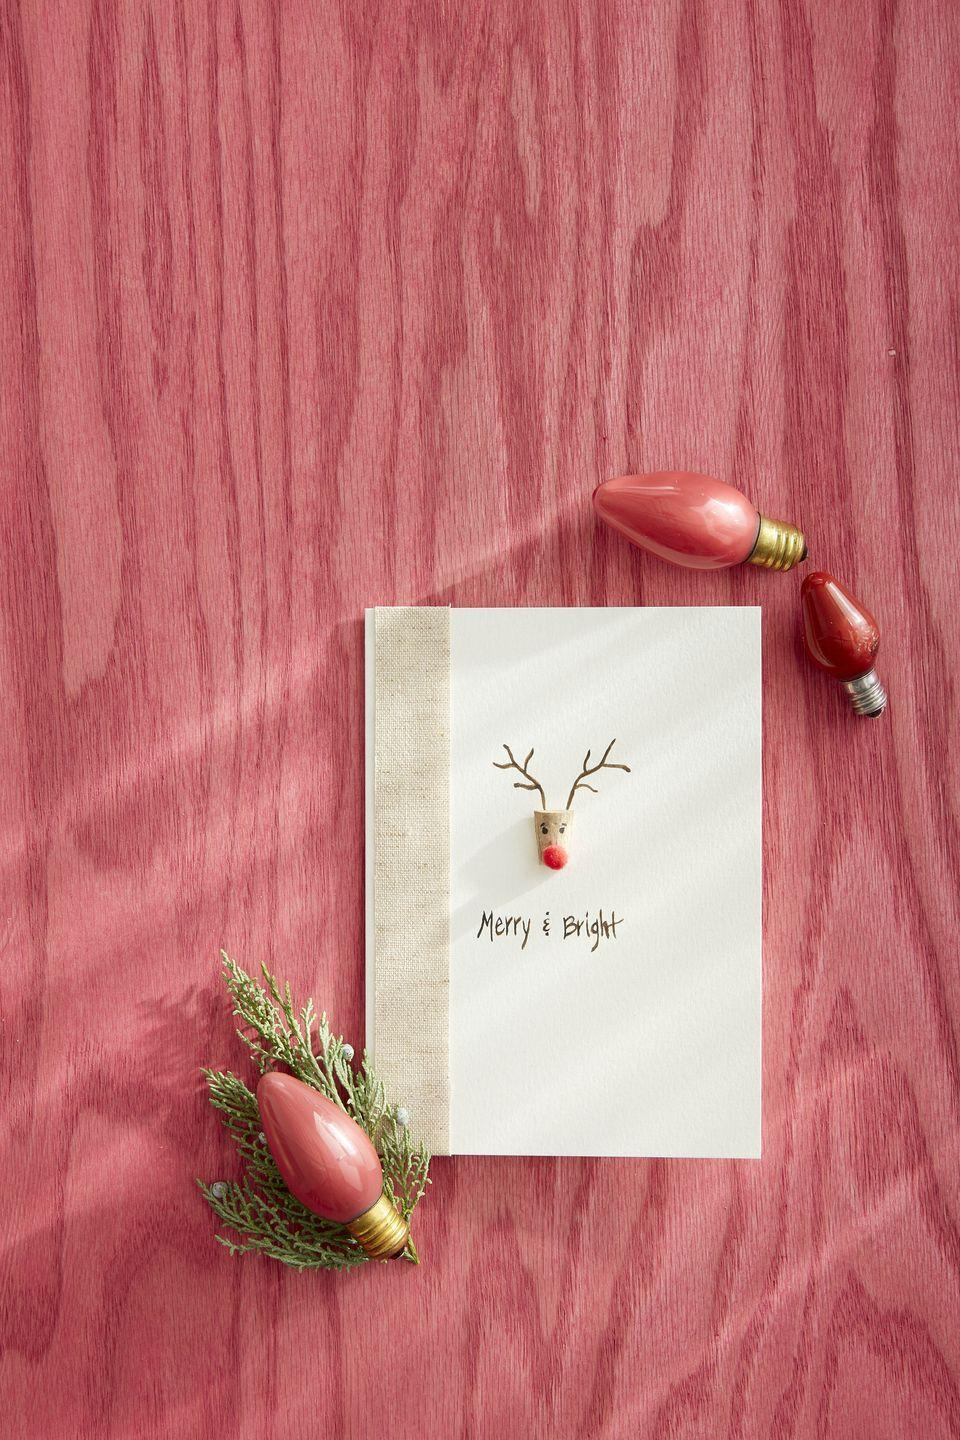 """<p>Send a bright red greeting from Rudolf, everyone's favorite spreader of holiday cheer.</p><p><strong>To make:</strong> Half a small craft cork. Use a black marker to draw on eyes and eye lashes. Attach a mini red pompom with glue. Glue cork to the front of a plain card. Use a fine tip brown felt marker to draw antlers and add a greeting. Add a ribbon flair to the fold edge of the card.</p><p><a class=""""link rapid-noclick-resp"""" href=""""https://www.amazon.com/Tapered-Wooden-Bottle-Stoppers-Replacement/dp/B089M4PBP7/ref=sr_1_16?tag=syn-yahoo-20&ascsubtag=%5Bartid%7C10050.g.3872%5Bsrc%7Cyahoo-us"""" rel=""""nofollow noopener"""" target=""""_blank"""" data-ylk=""""slk:SHOP CORKS"""">SHOP CORKS</a></p>"""